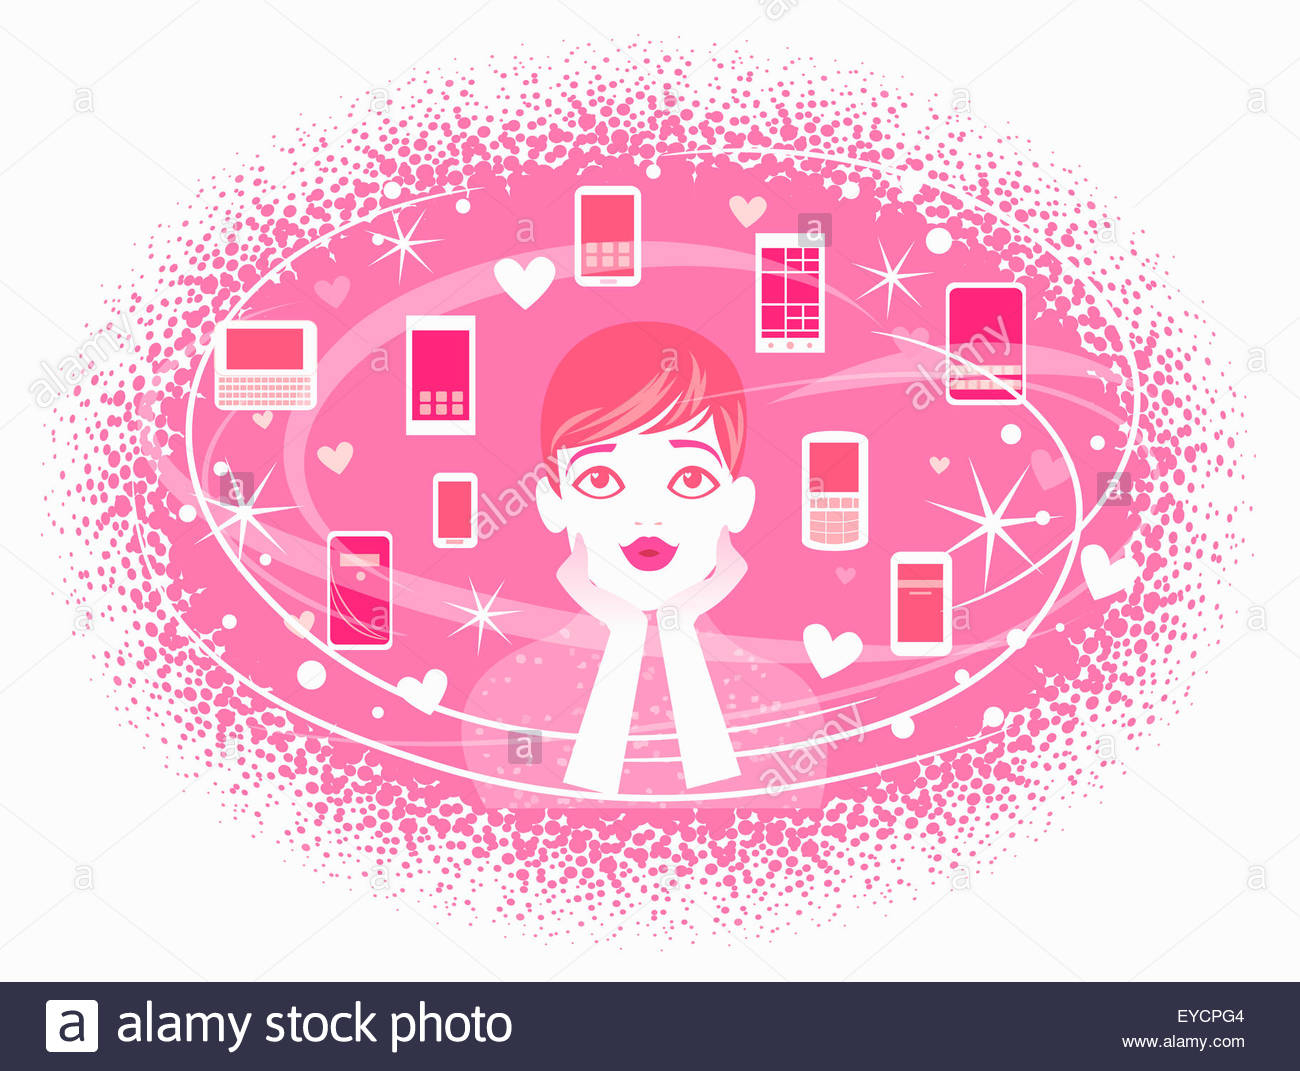 Woman dreaming of pink cell phones - Stock Image